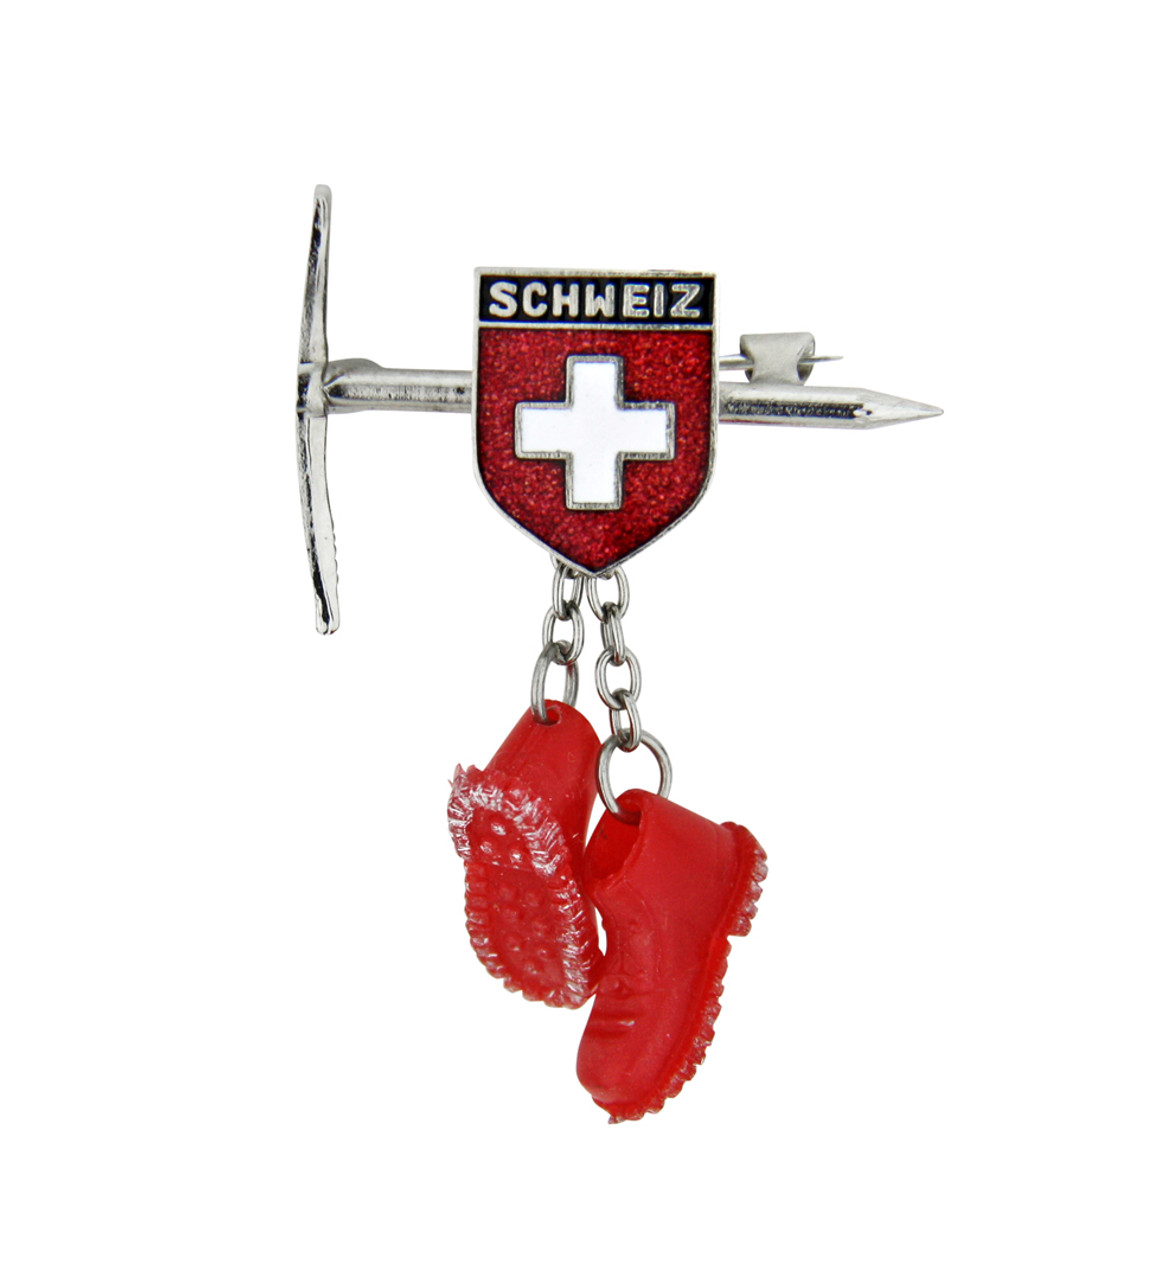 Switzerland Mountaineering Pin with Pick and Red Shoes